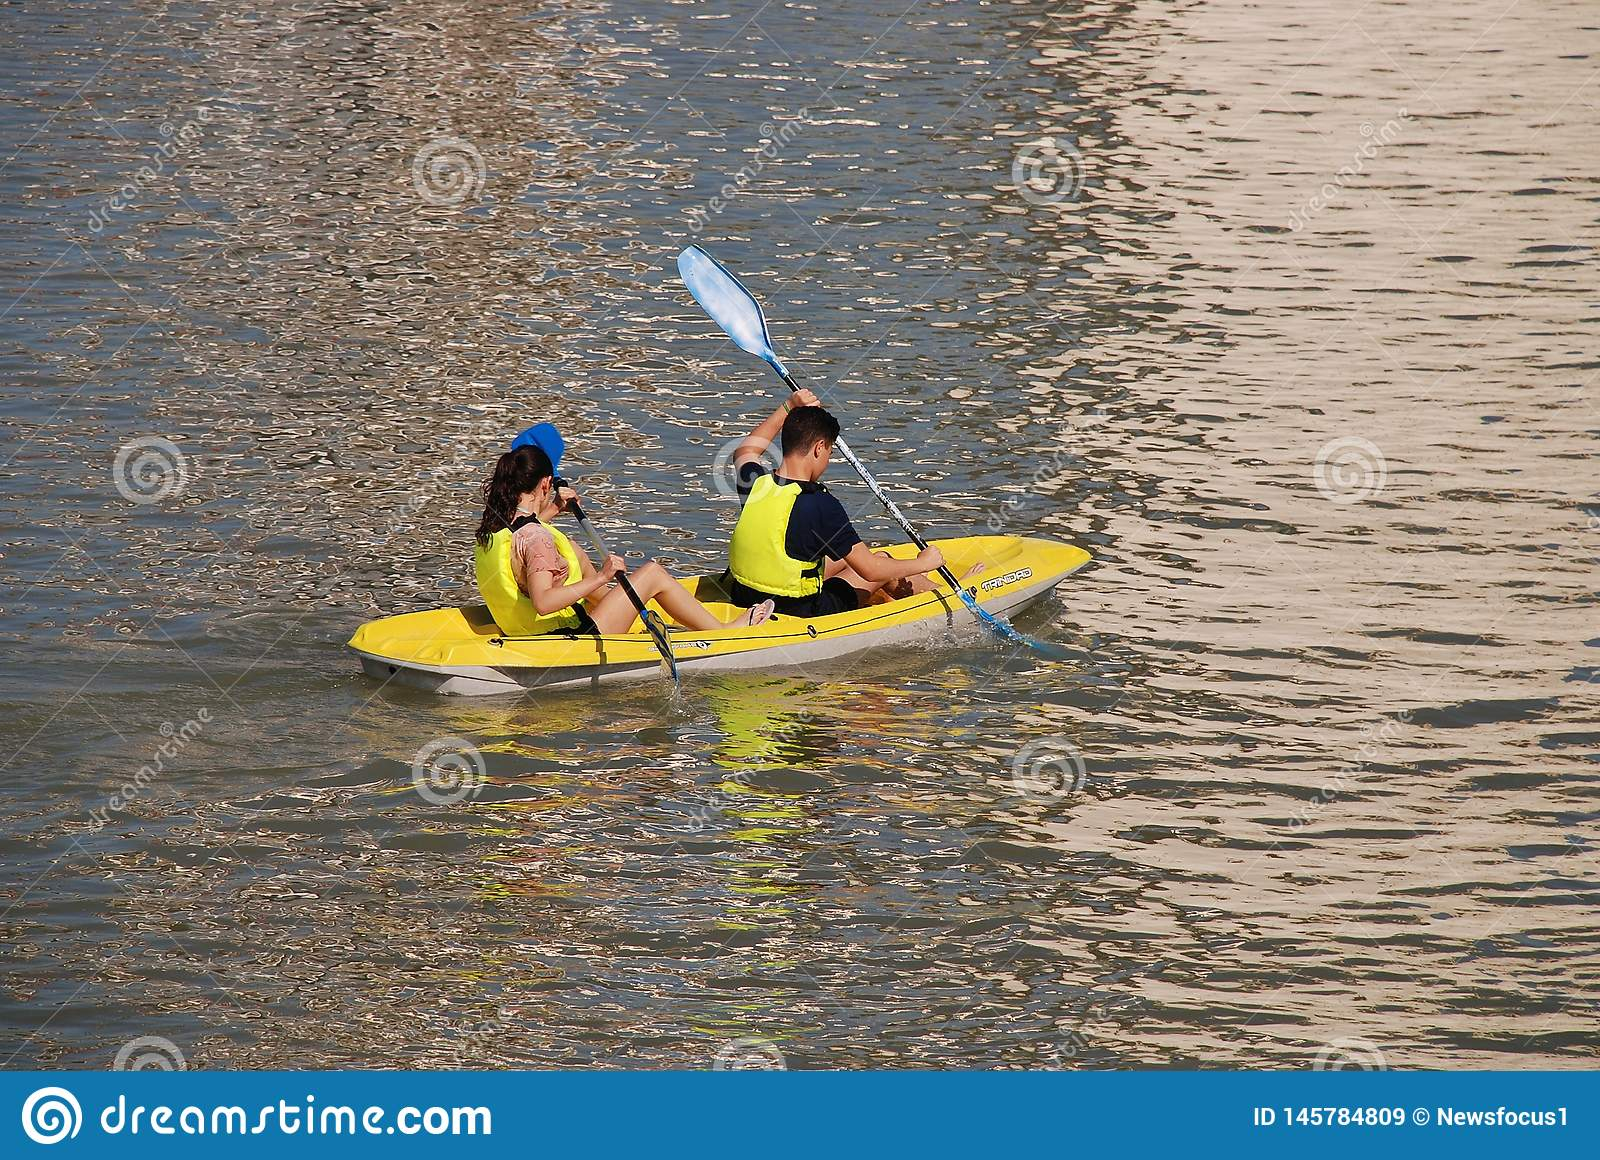 Seville kayakers